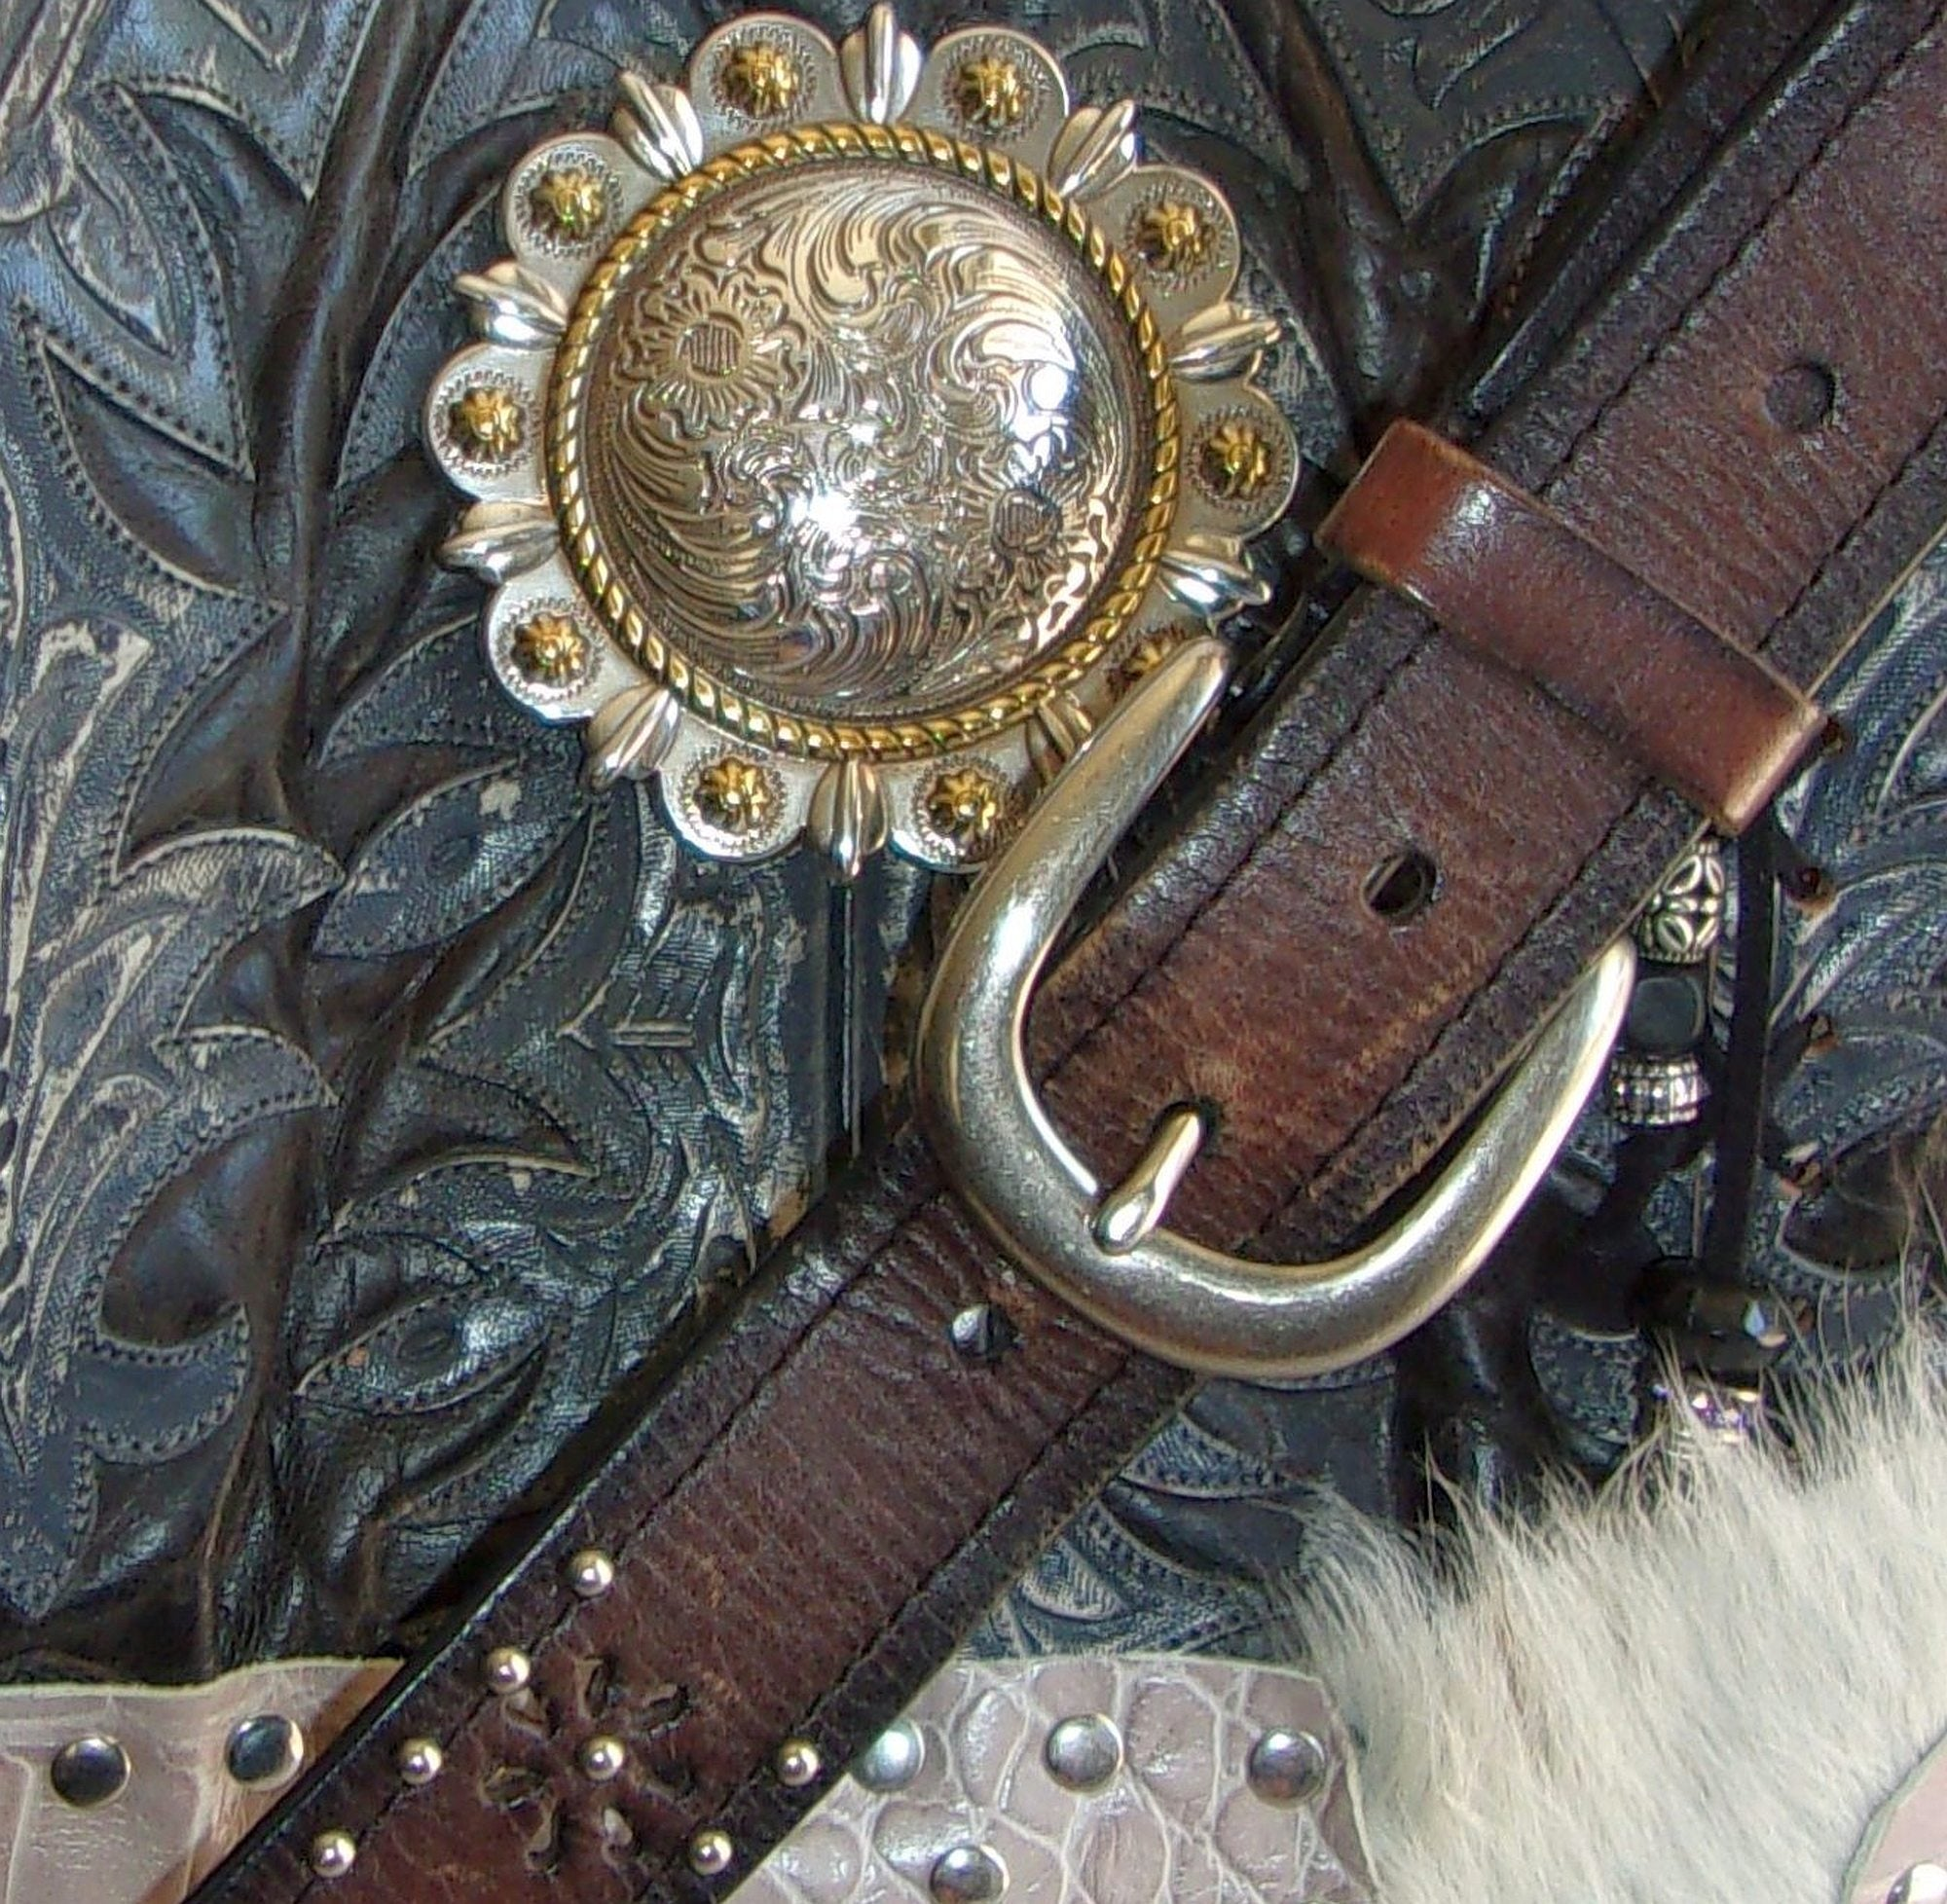 close up of ts266 hair on hide unique leather handbag handcrafted from reclaimed recycled cowboy boots